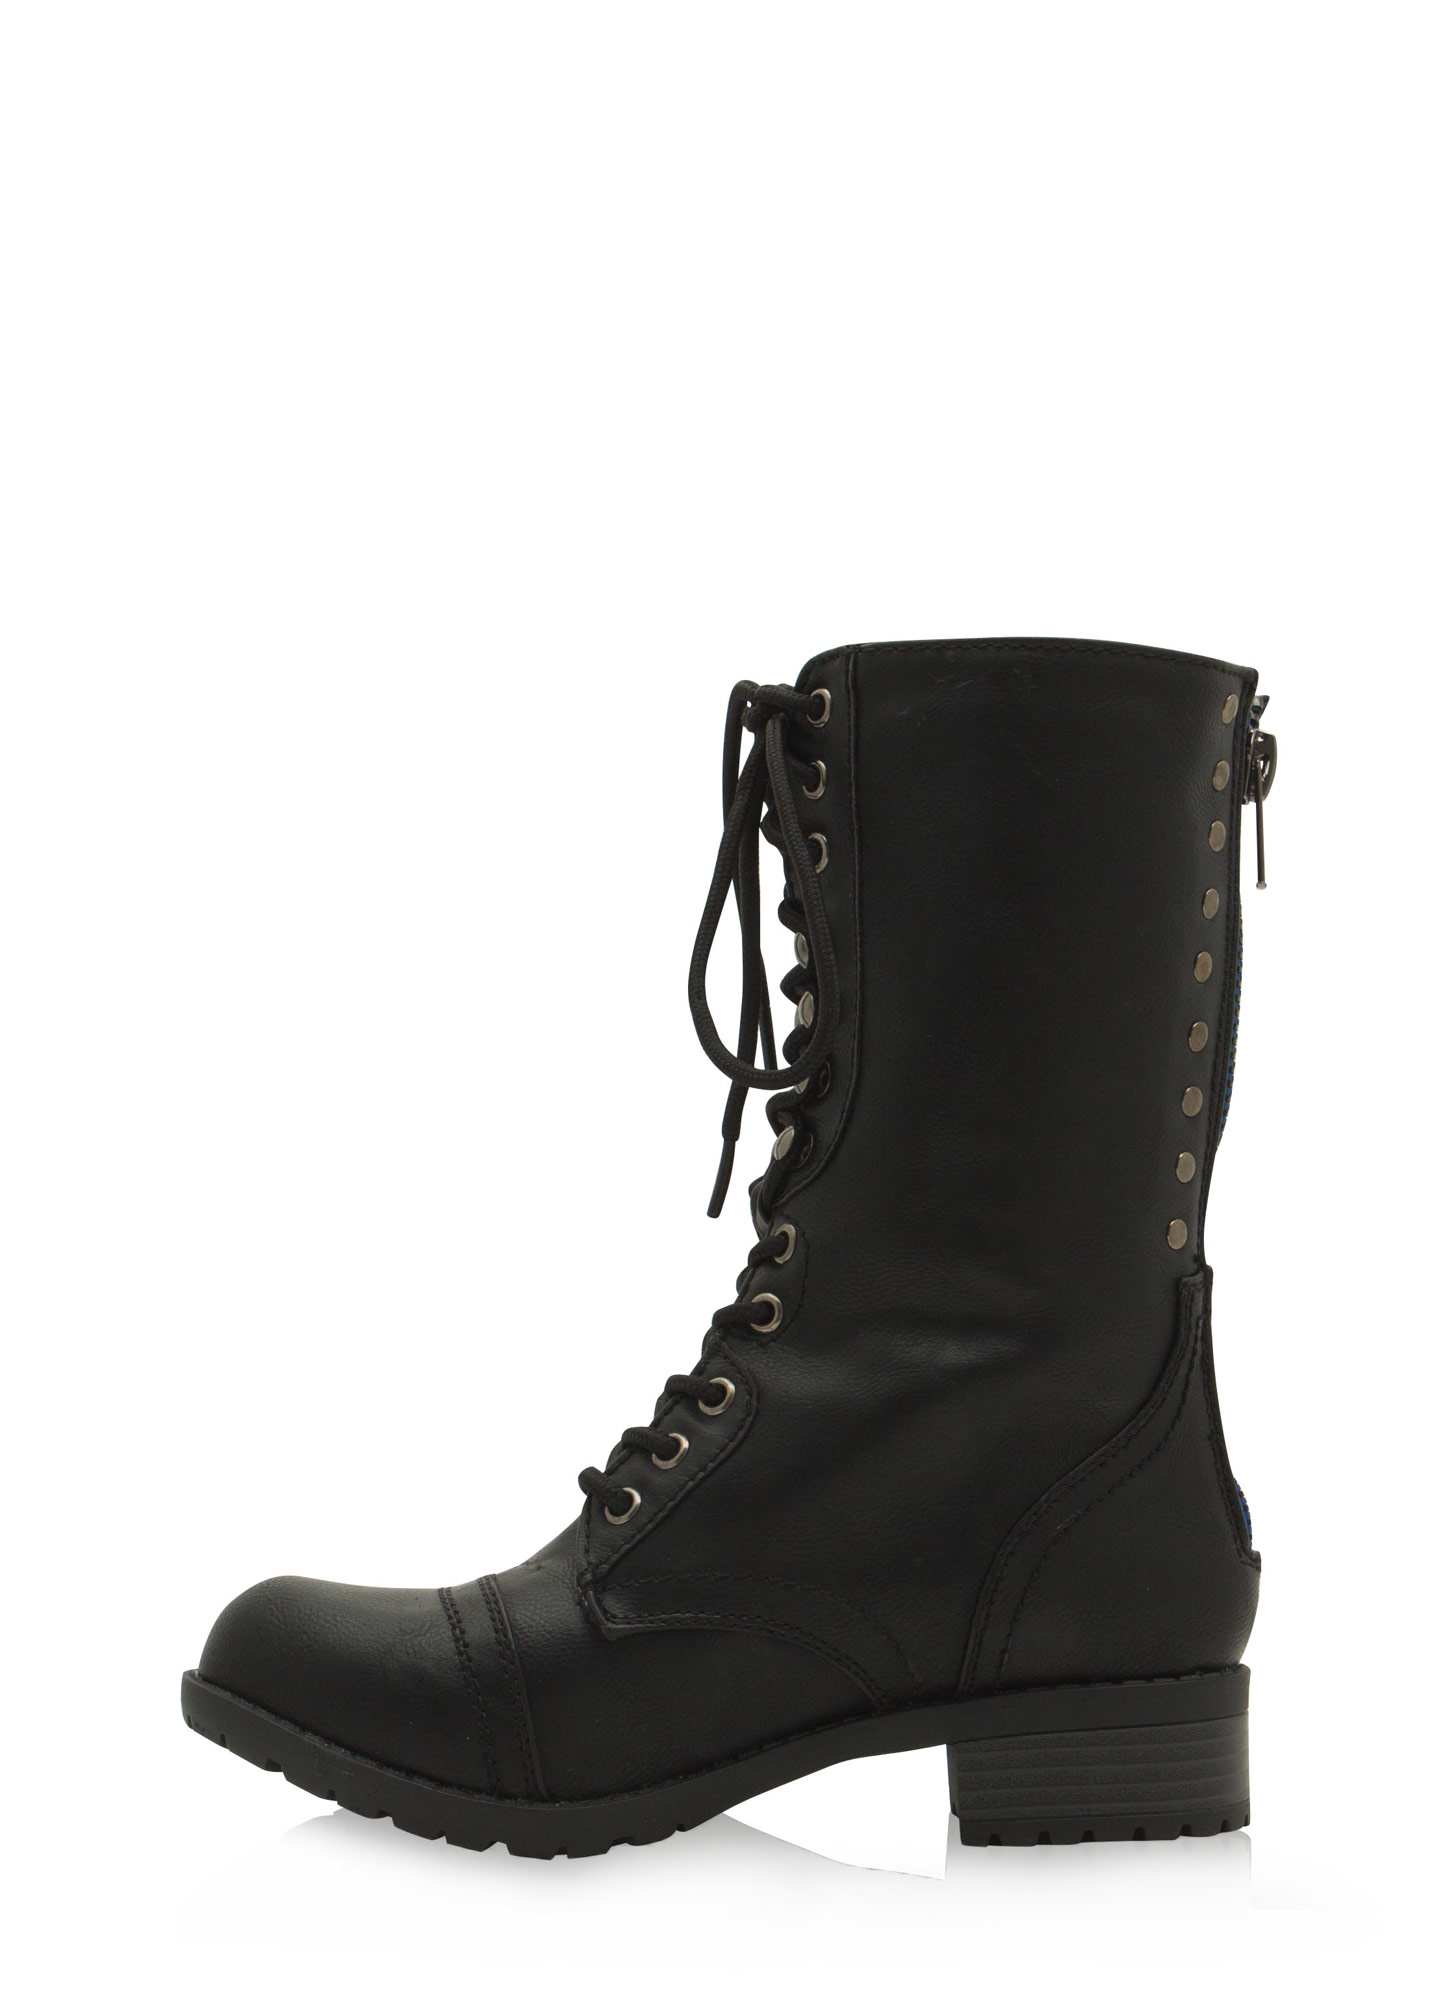 Studded Row Lace-Up Boots BLACK